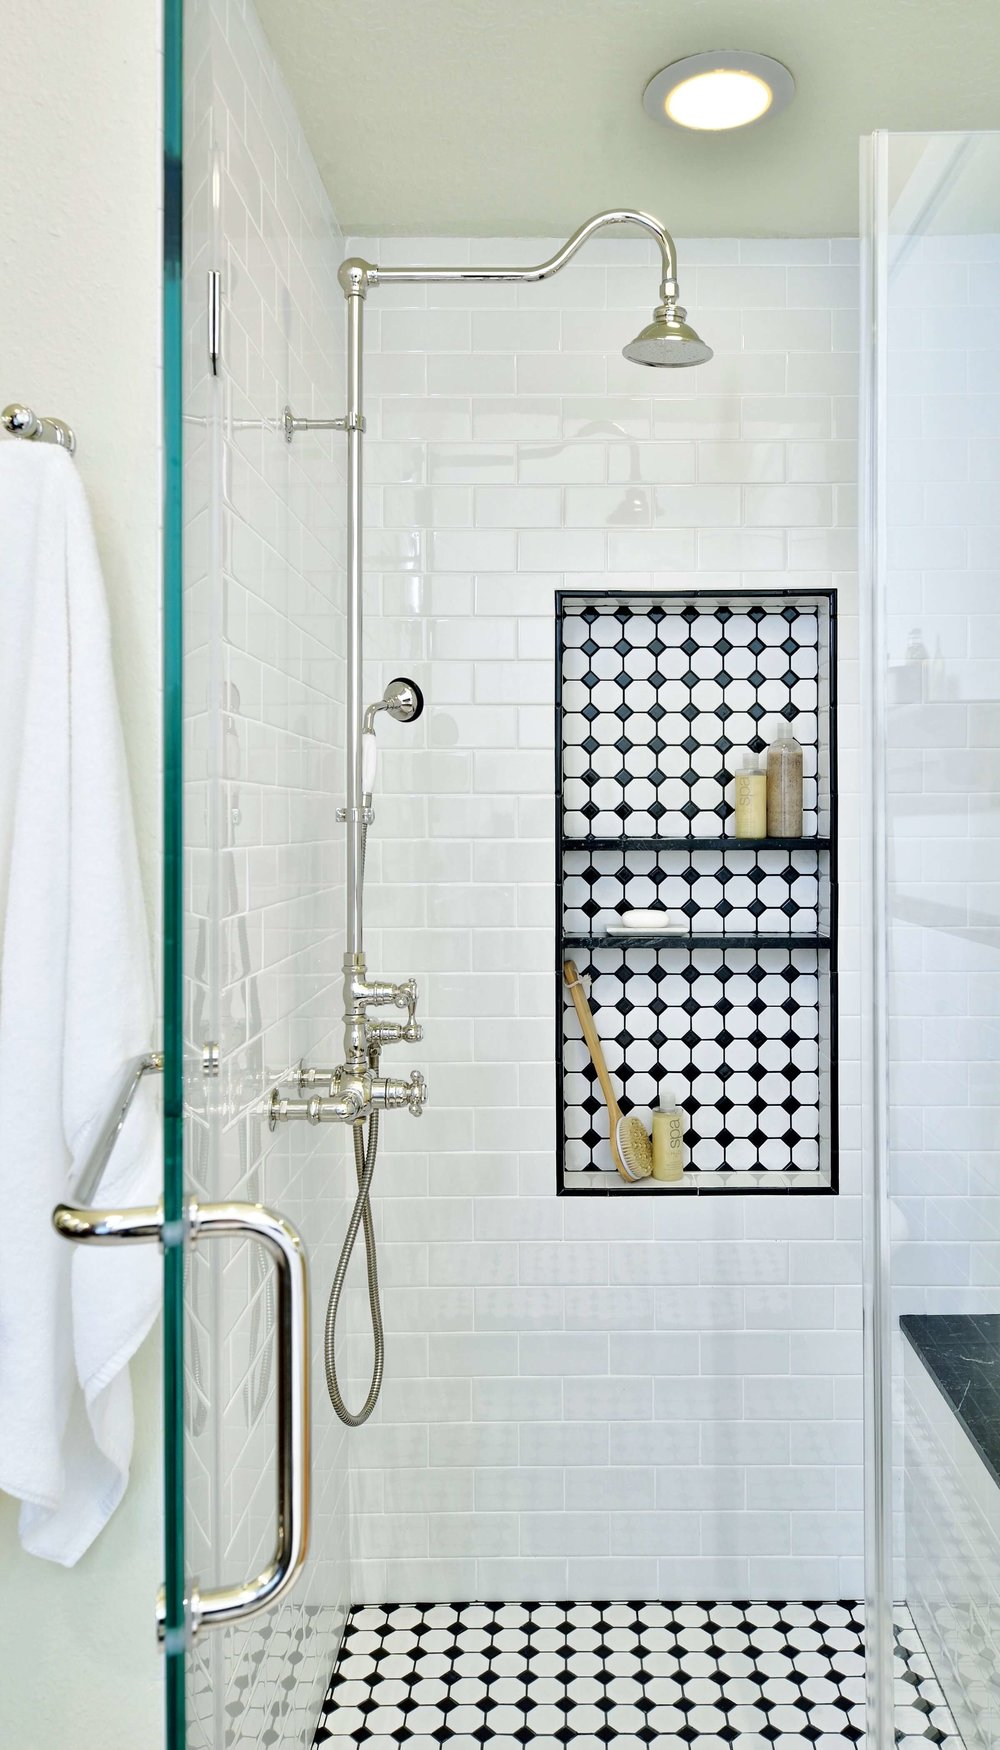 Black and white tile shower with shampoo niche and black marble shelf | Carla Aston, Designer, Miro Dvorscak, Photographer